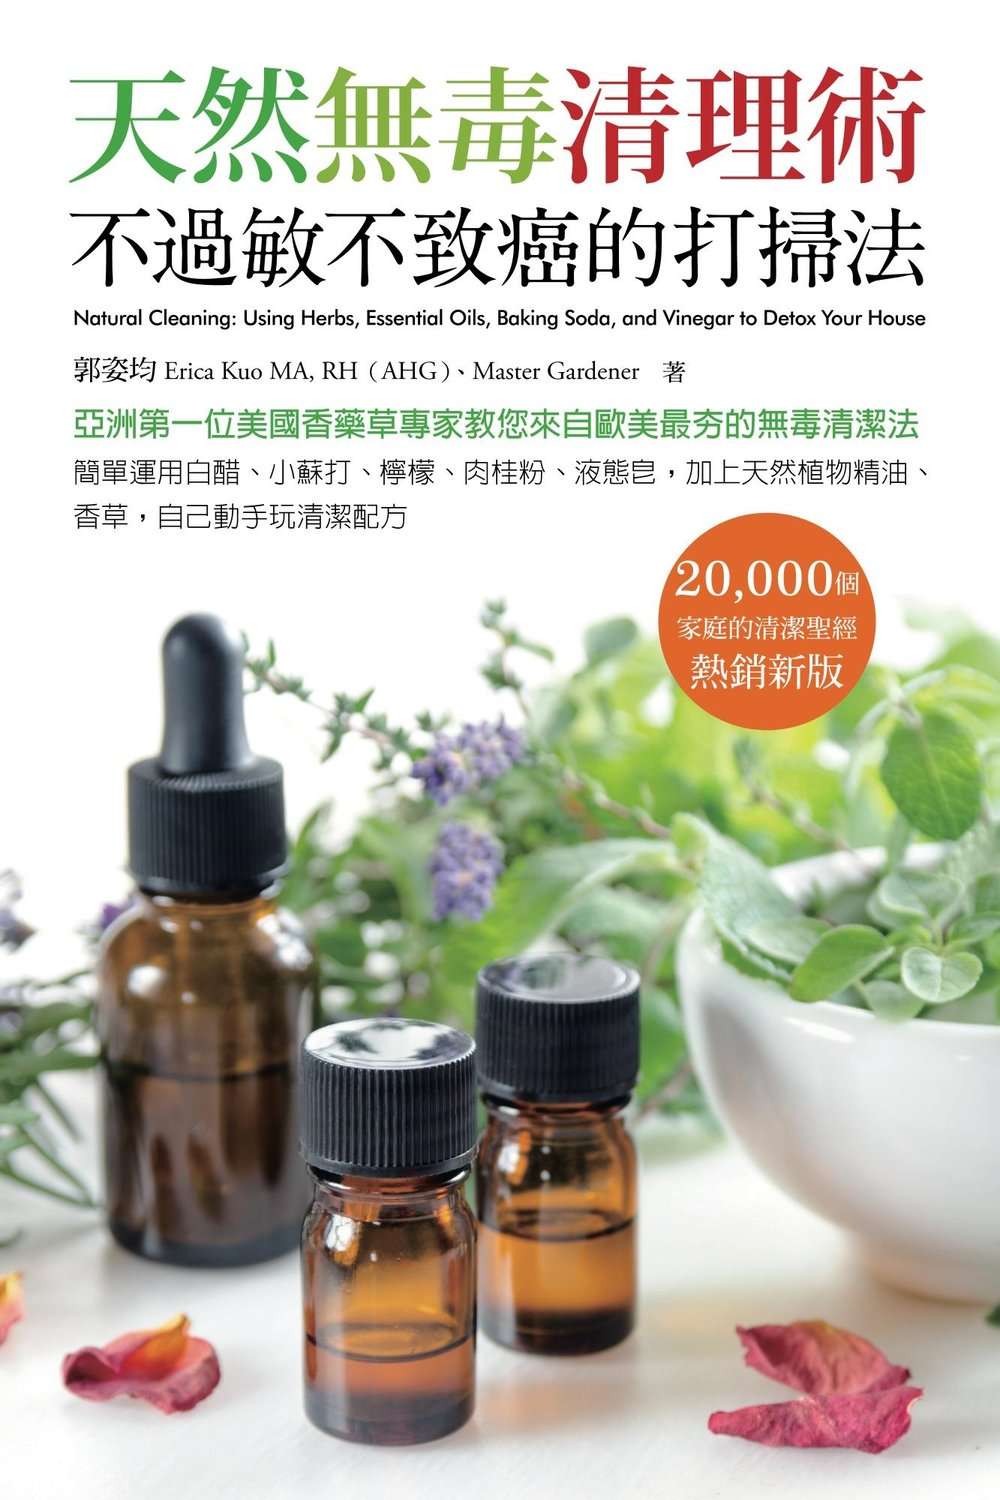 書名:Natural Cleaning Chinese Version on Amazon.com -